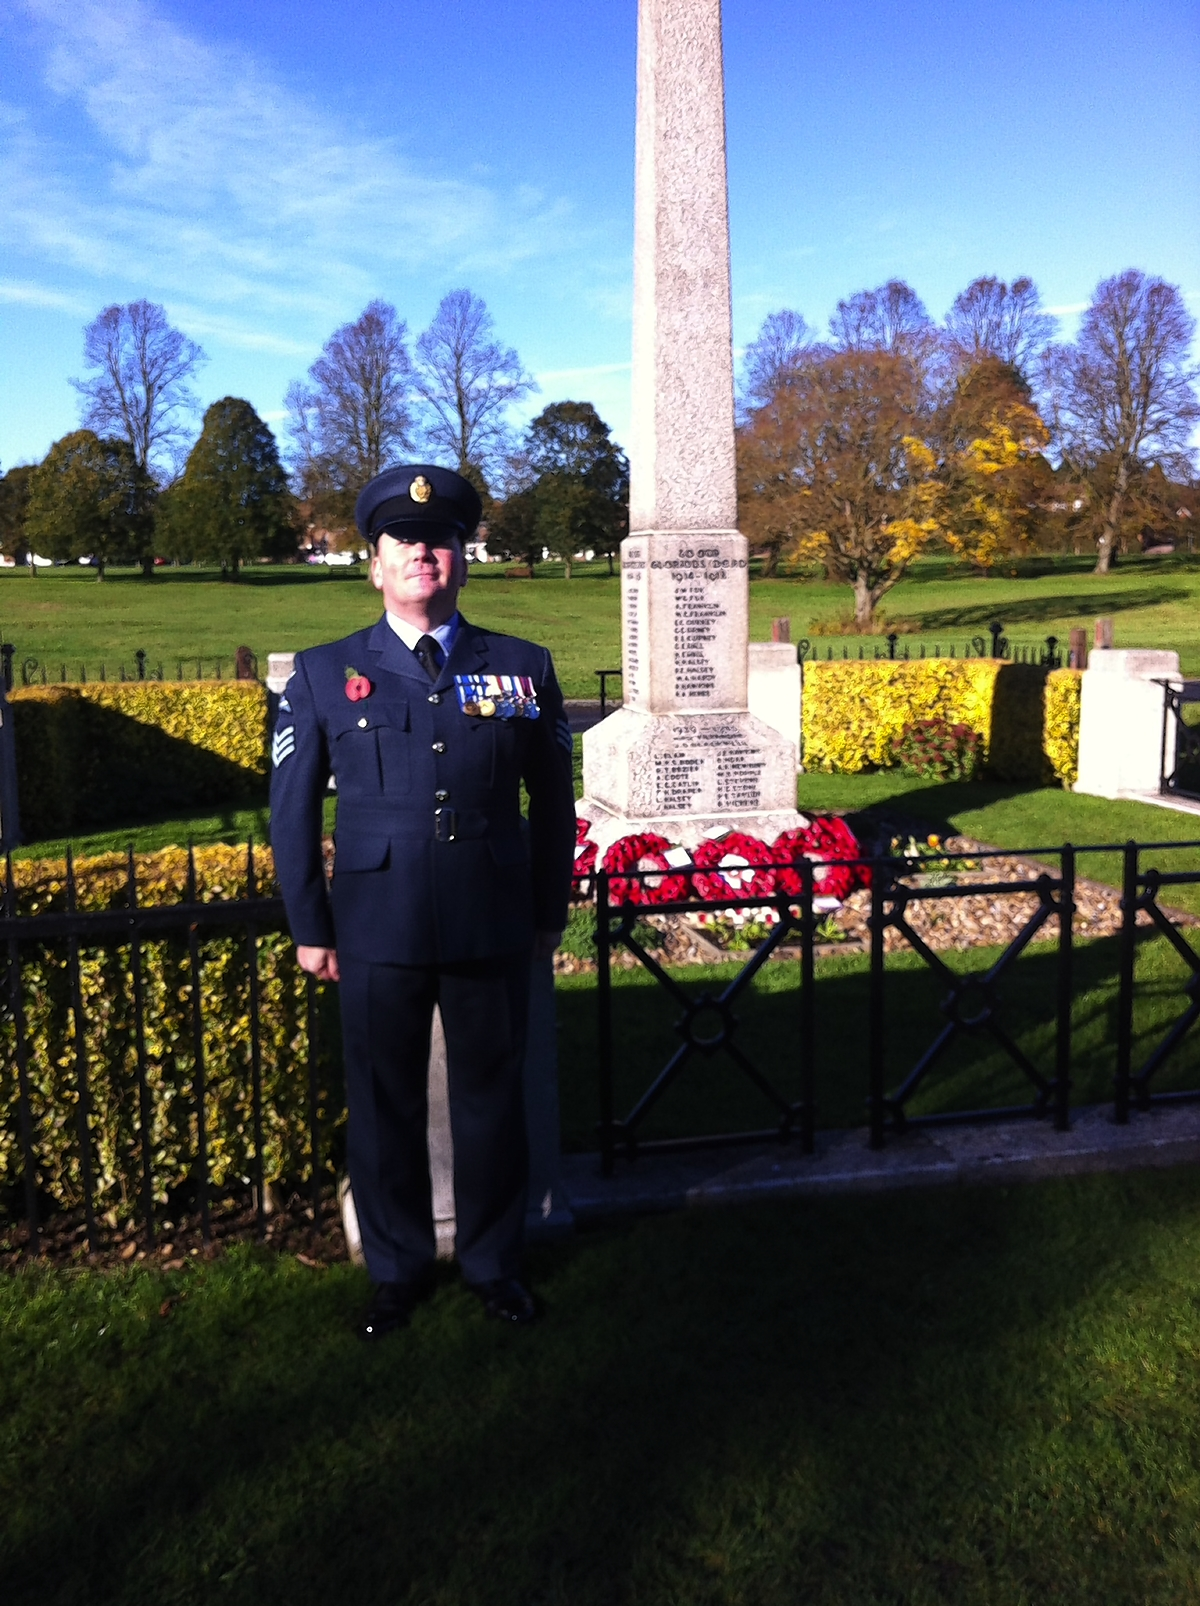 Royal Air Force New Year's Honour for Redbourn man